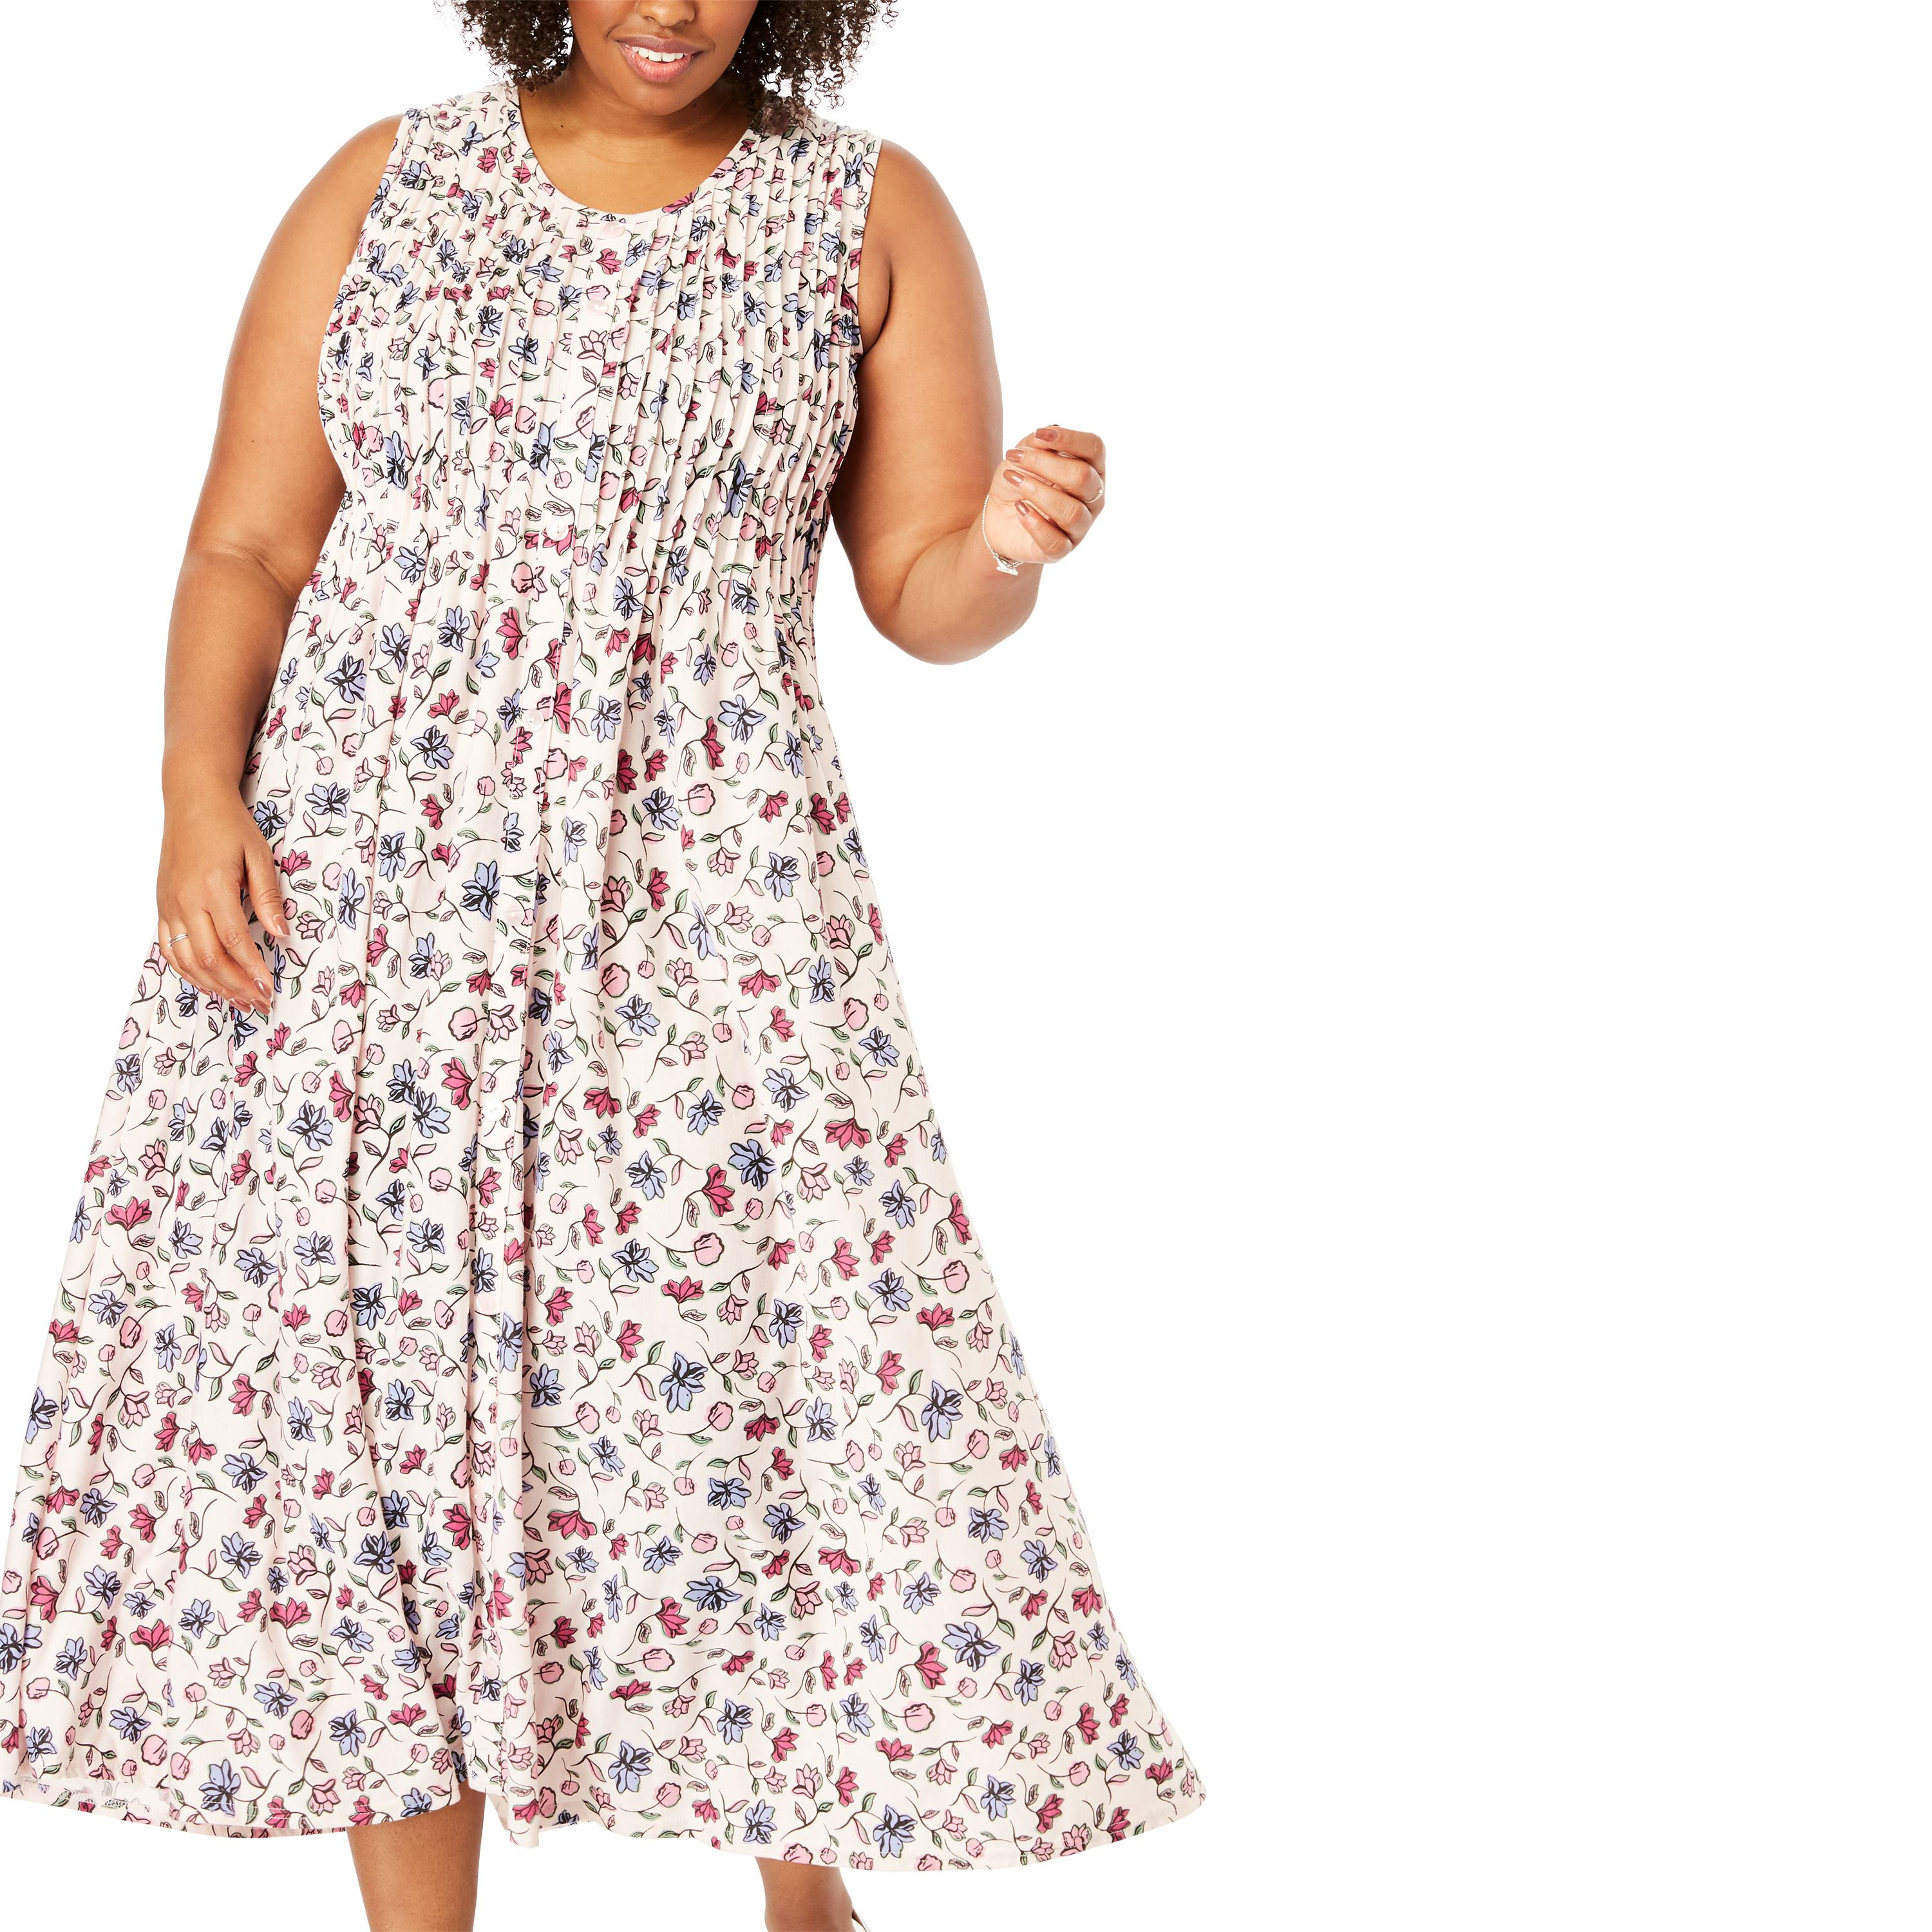 cf8a0ff3098 Woman Within - Woman Within Plus Size Pintucked Floral Sleeveless Dress -  Walmart.com